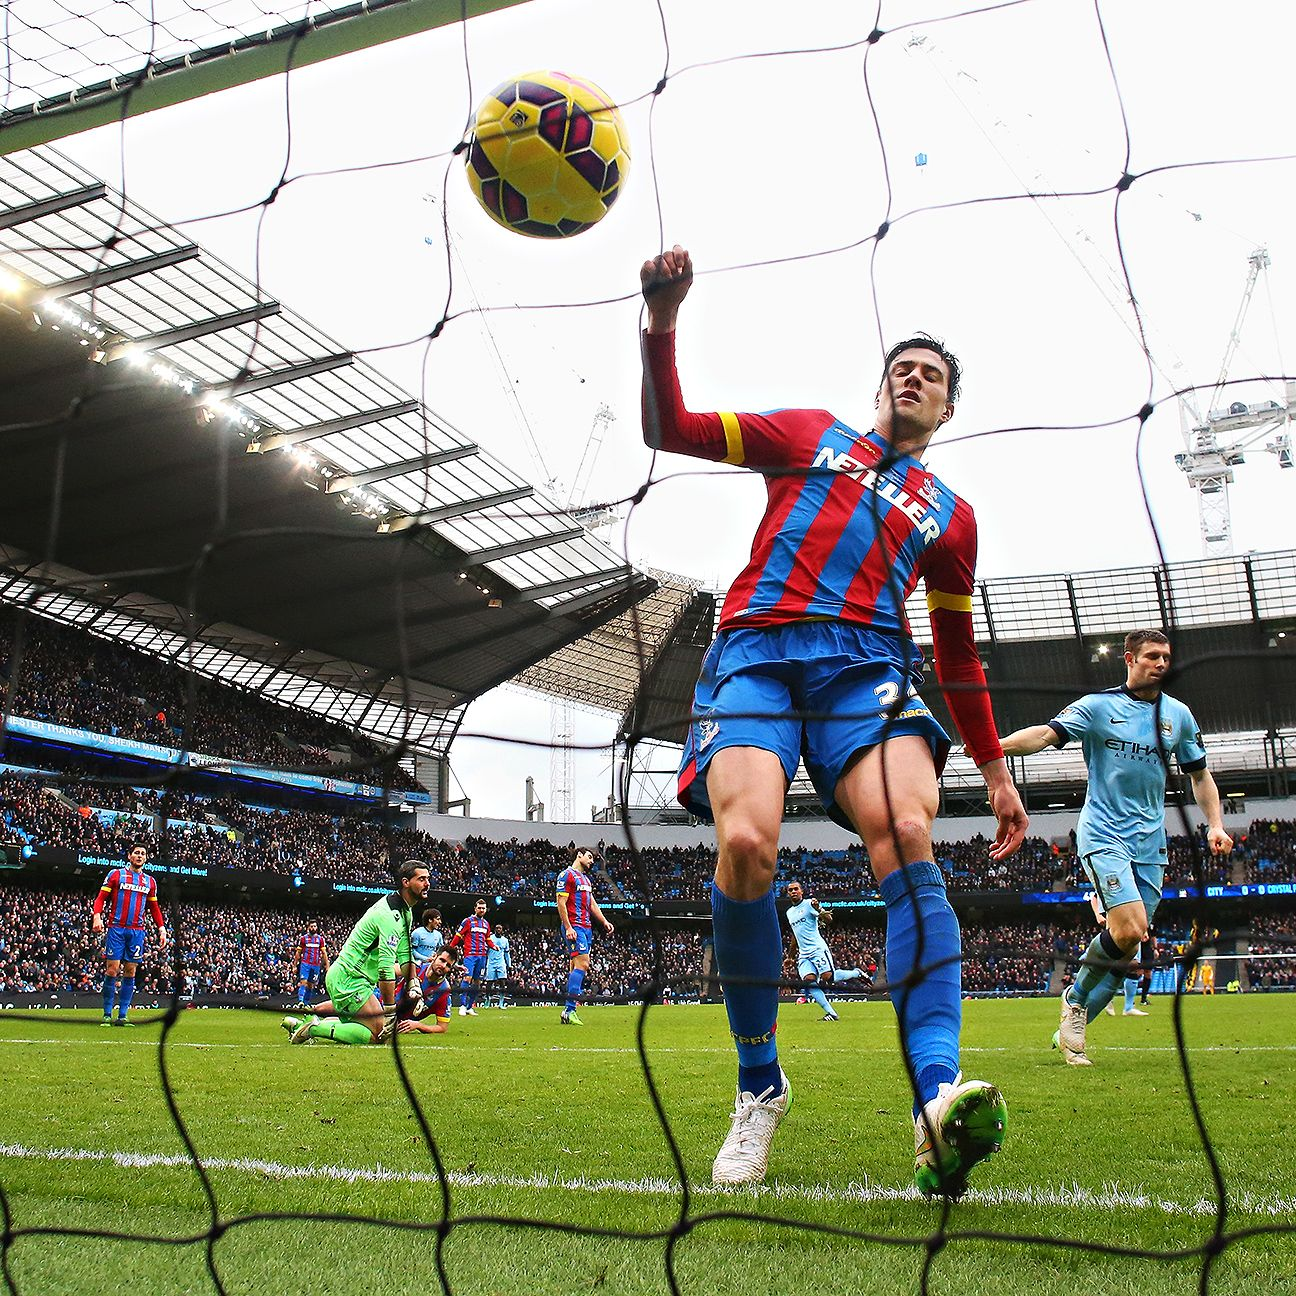 Martin Kelly was unable to prevent David Silva's deflected shot from going into net in Palace's hard-luck 3-0 defeat at Manchester City.